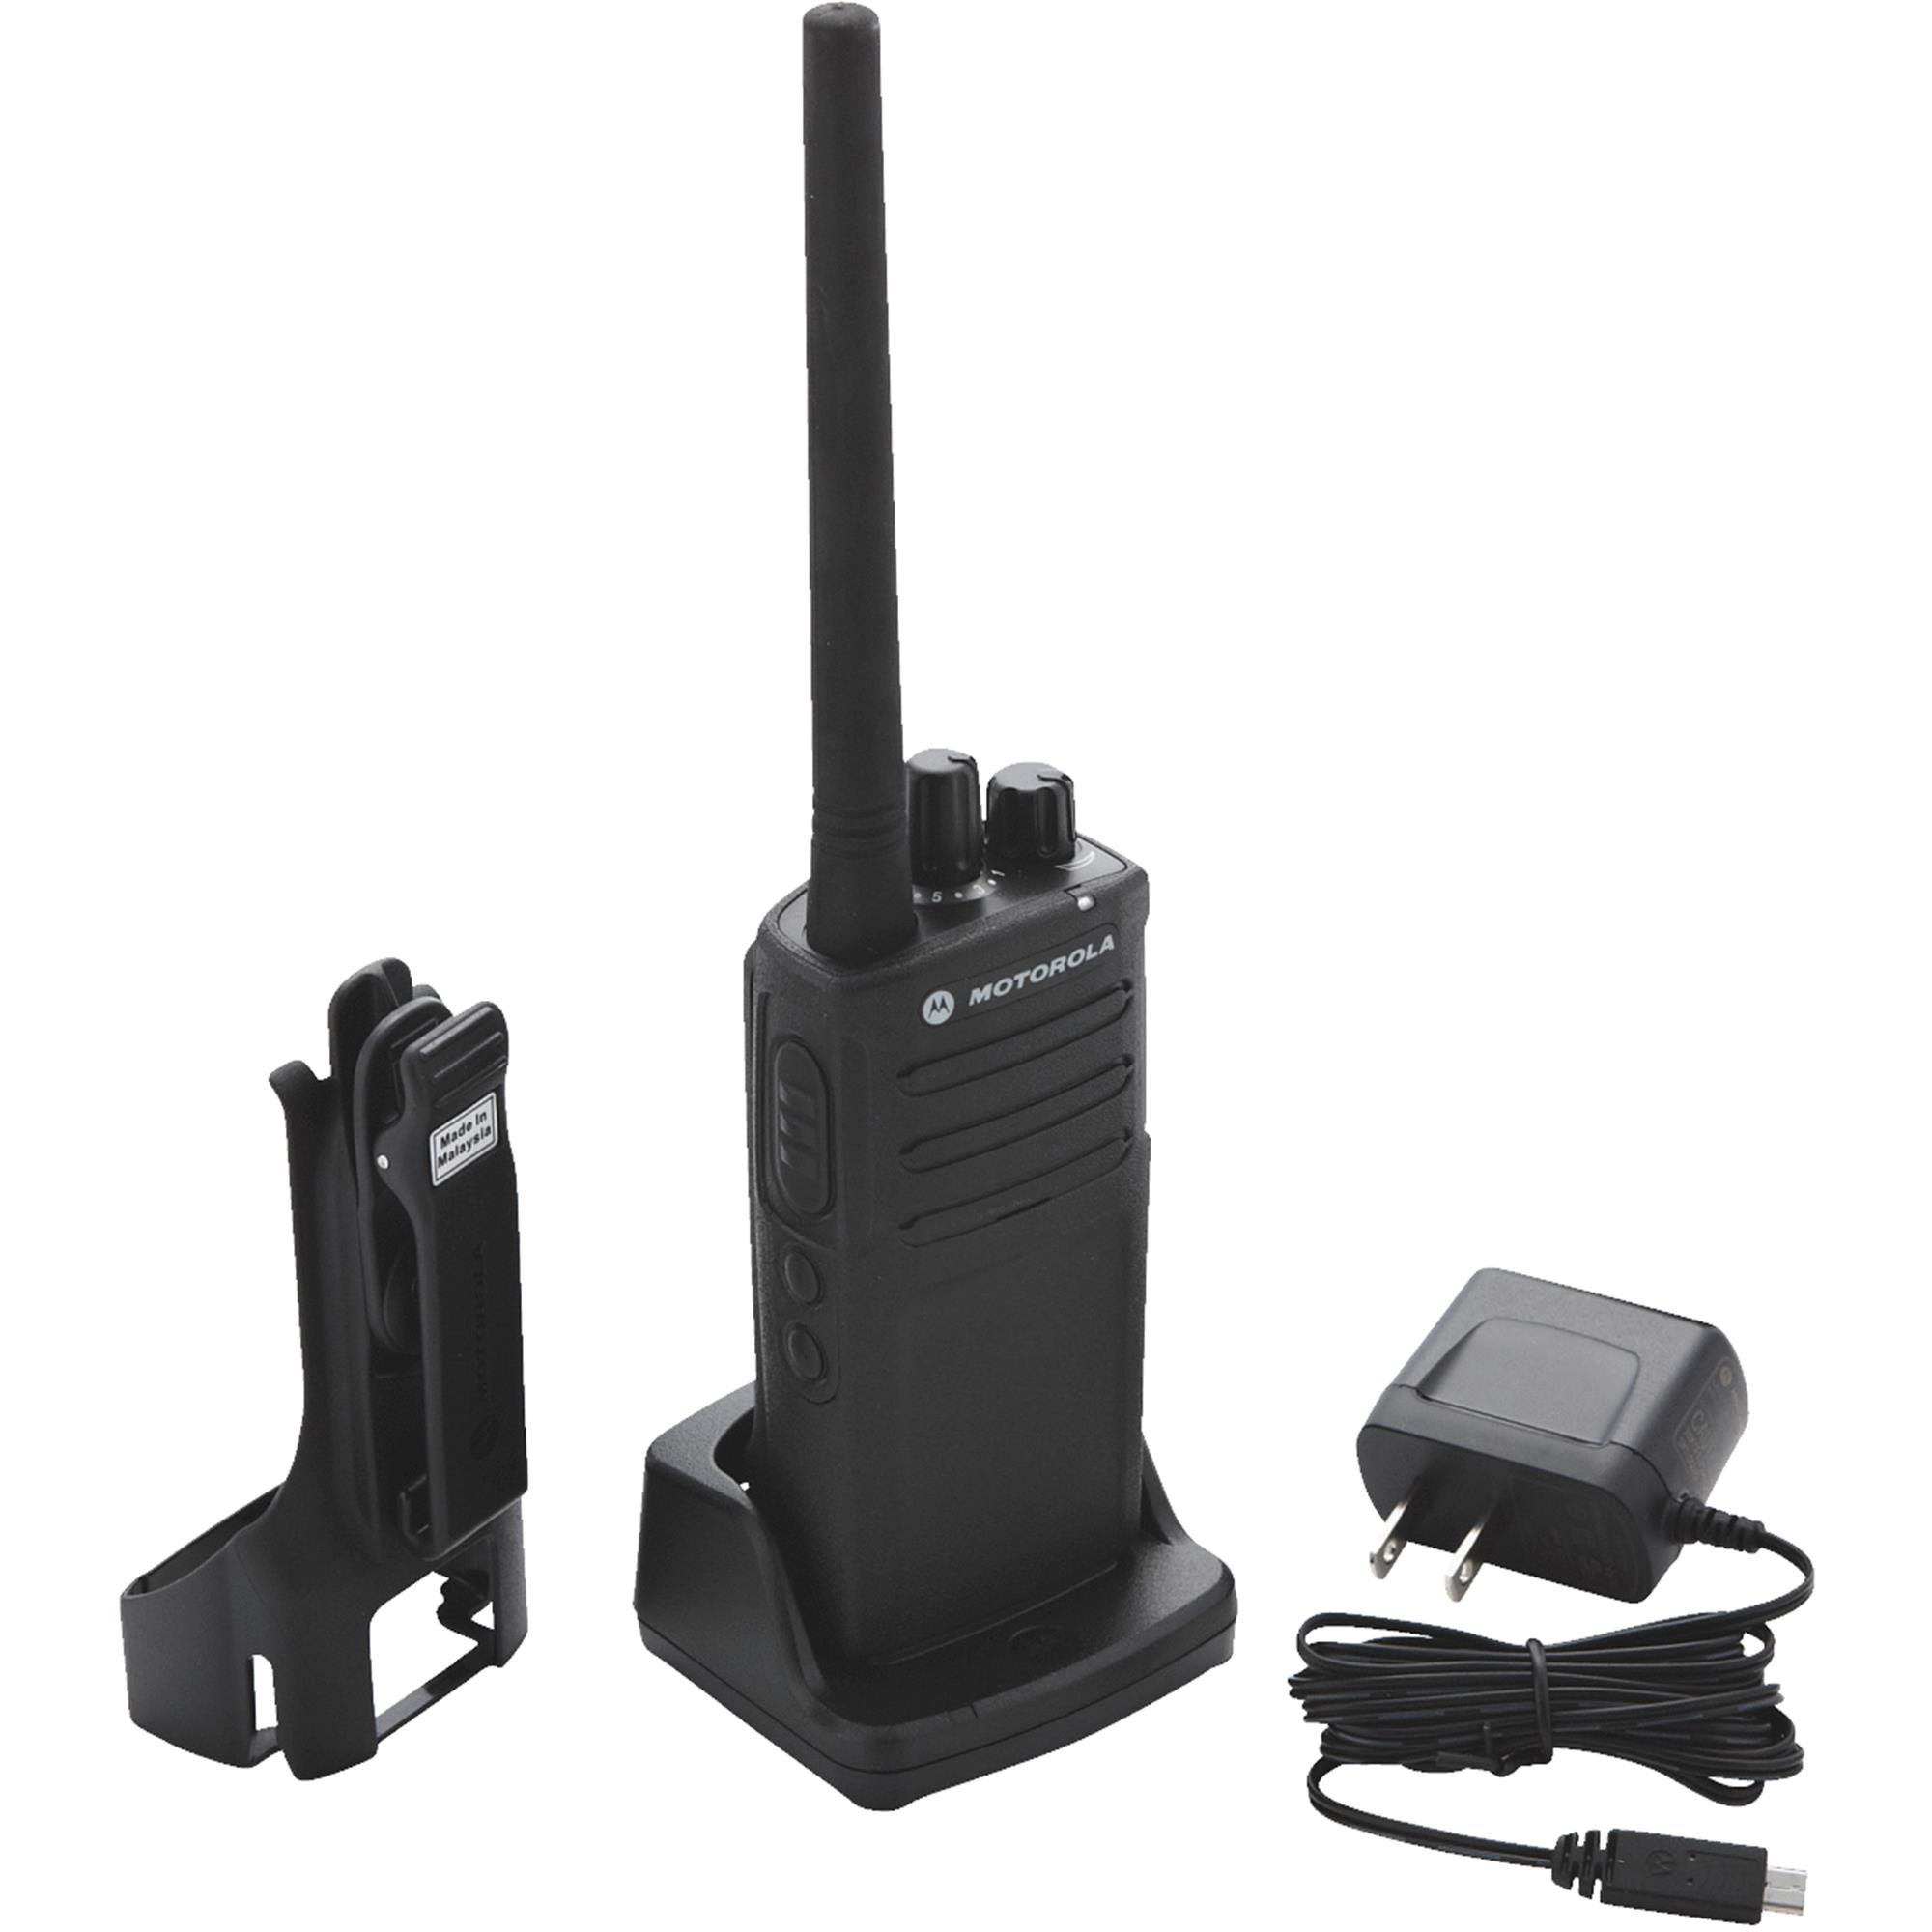 Motorola 2 Watt VHF Business 2-Way Radio